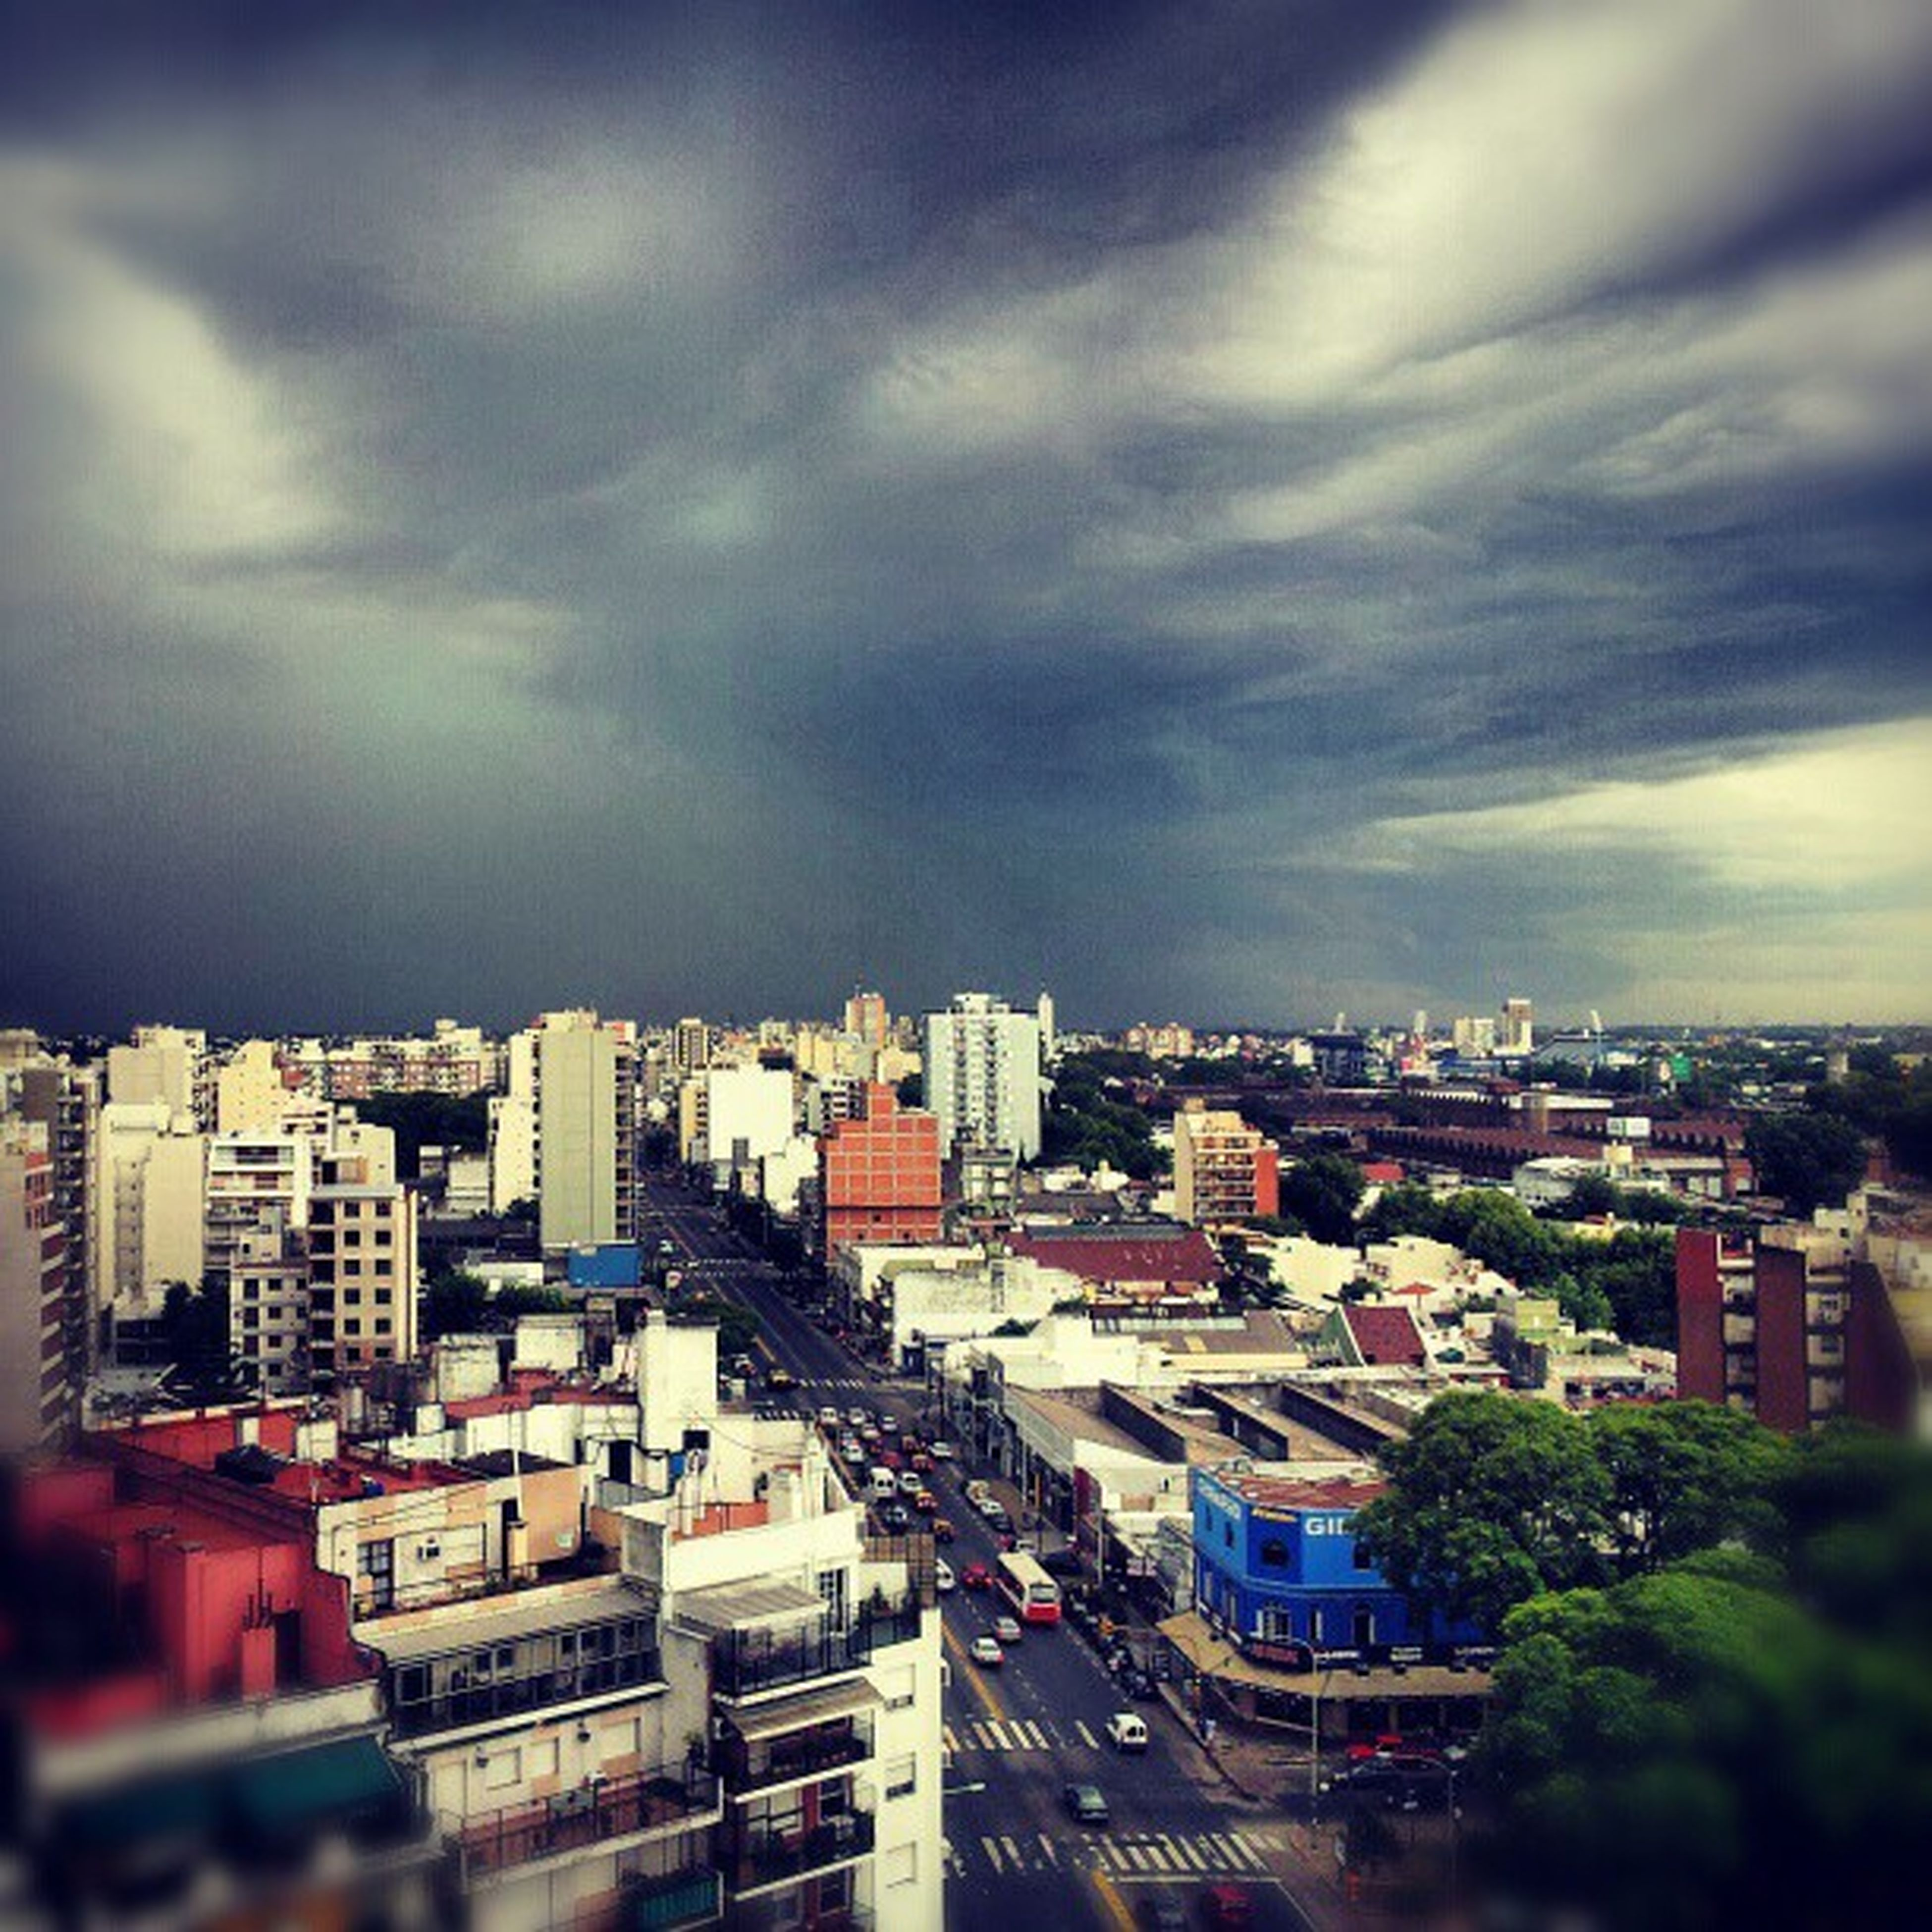 building exterior, architecture, built structure, city, cityscape, sky, cloud - sky, high angle view, cloudy, residential district, crowded, residential building, residential structure, cloud, city life, overcast, outdoors, weather, tree, no people